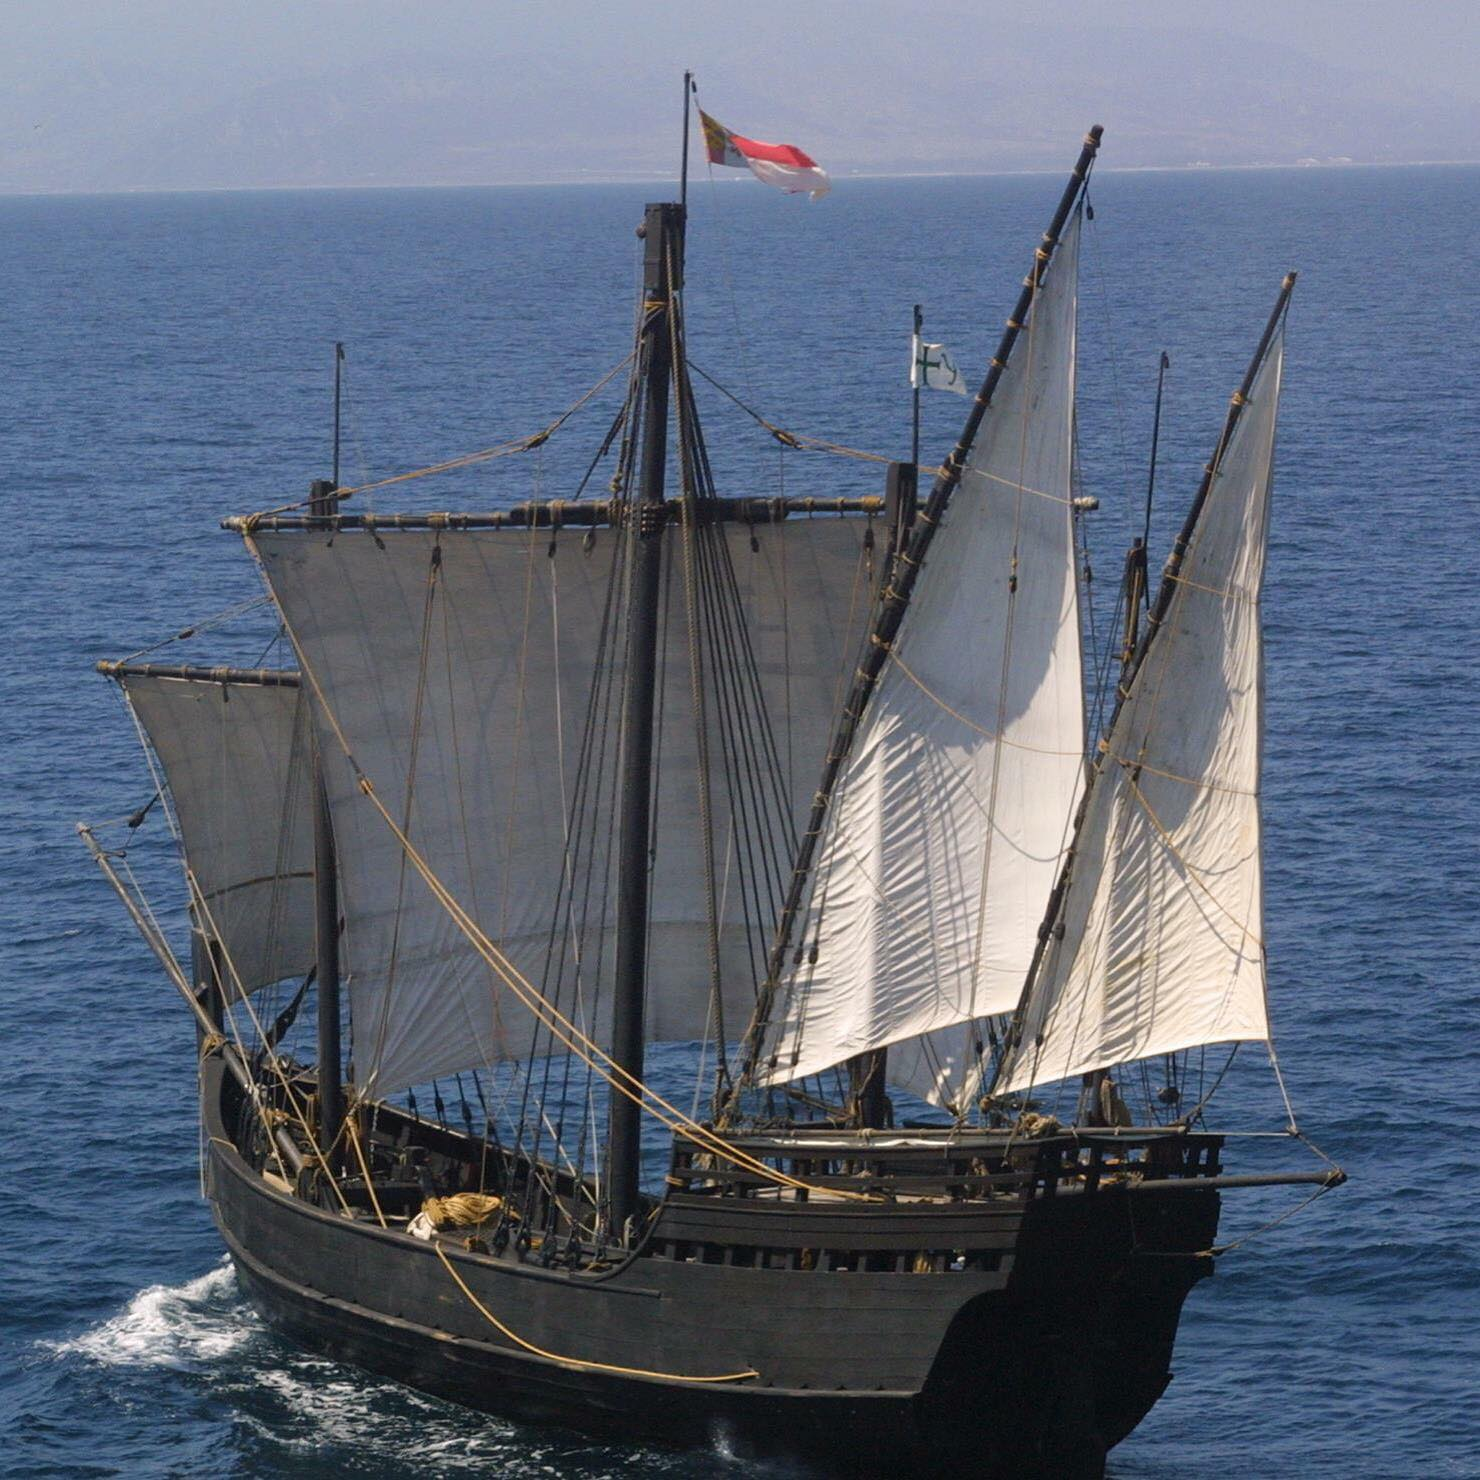 Grand Traverse Band wasn't consulted about ill-timed visit by Christopher Columbus replica ships